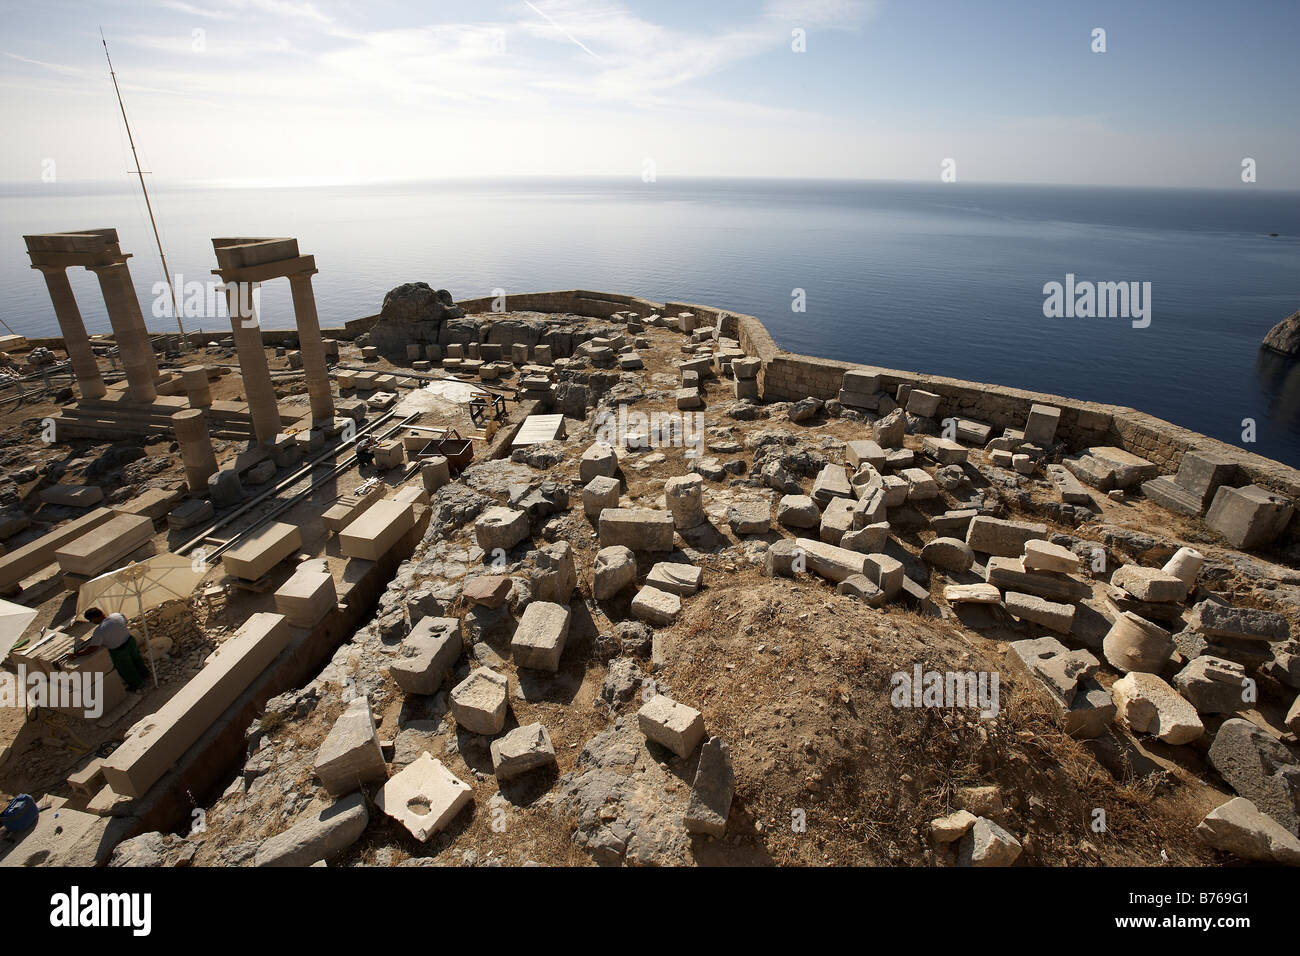 Acropolis Lindos Island of Rhodes Greece - Stock Image